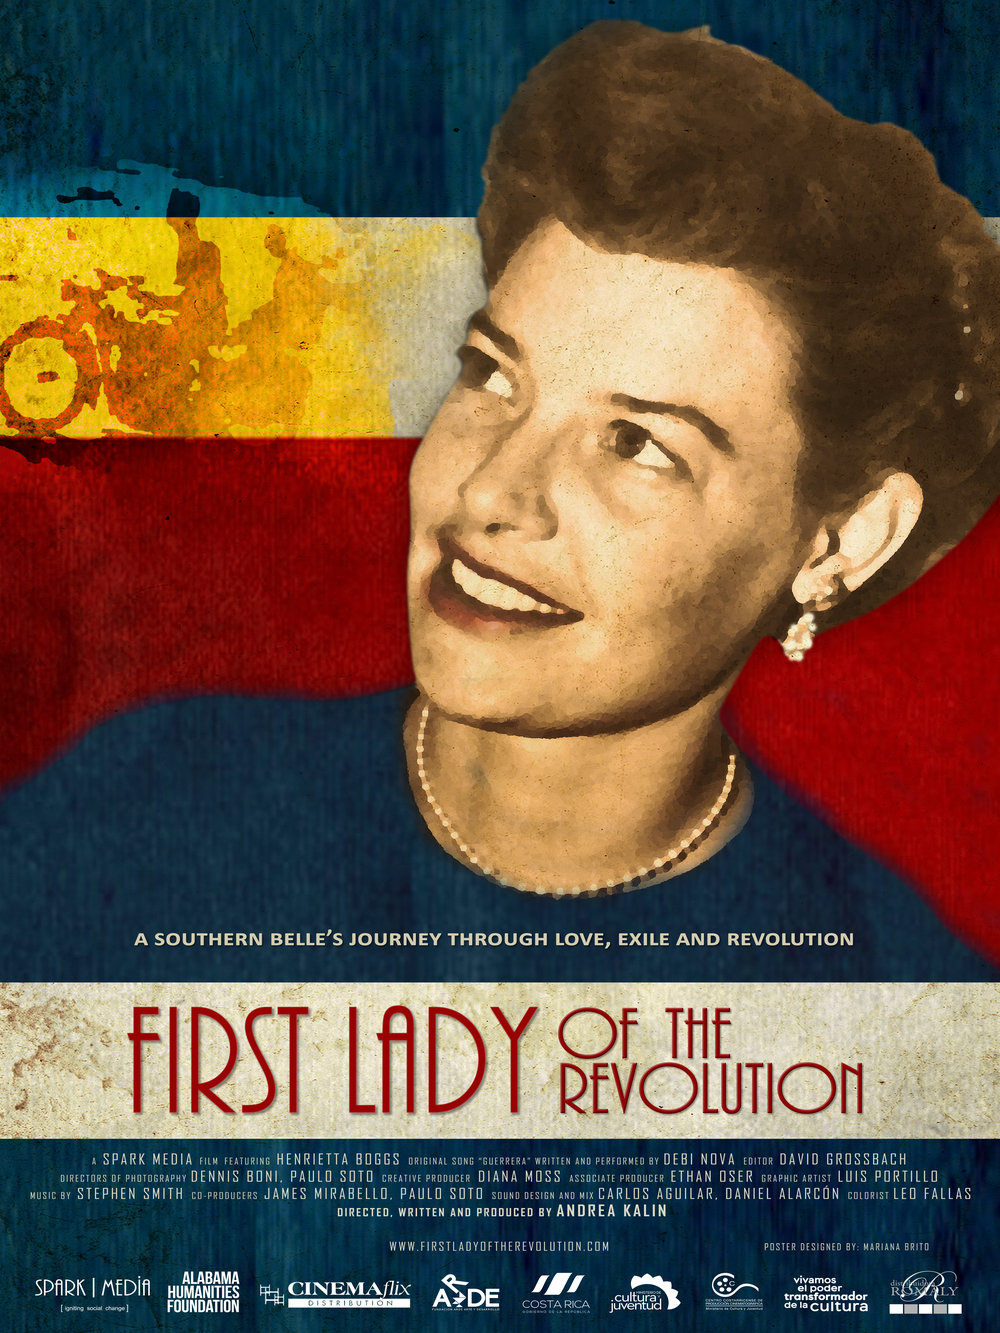 First Lady of the Revolution    While visiting an aunt and uncle in the exotic country side of Costa Rica, a young Southern Belle from Alabama accepted a ride on the back of a motorcycle belonging to a charismatic local farmer...   Read More